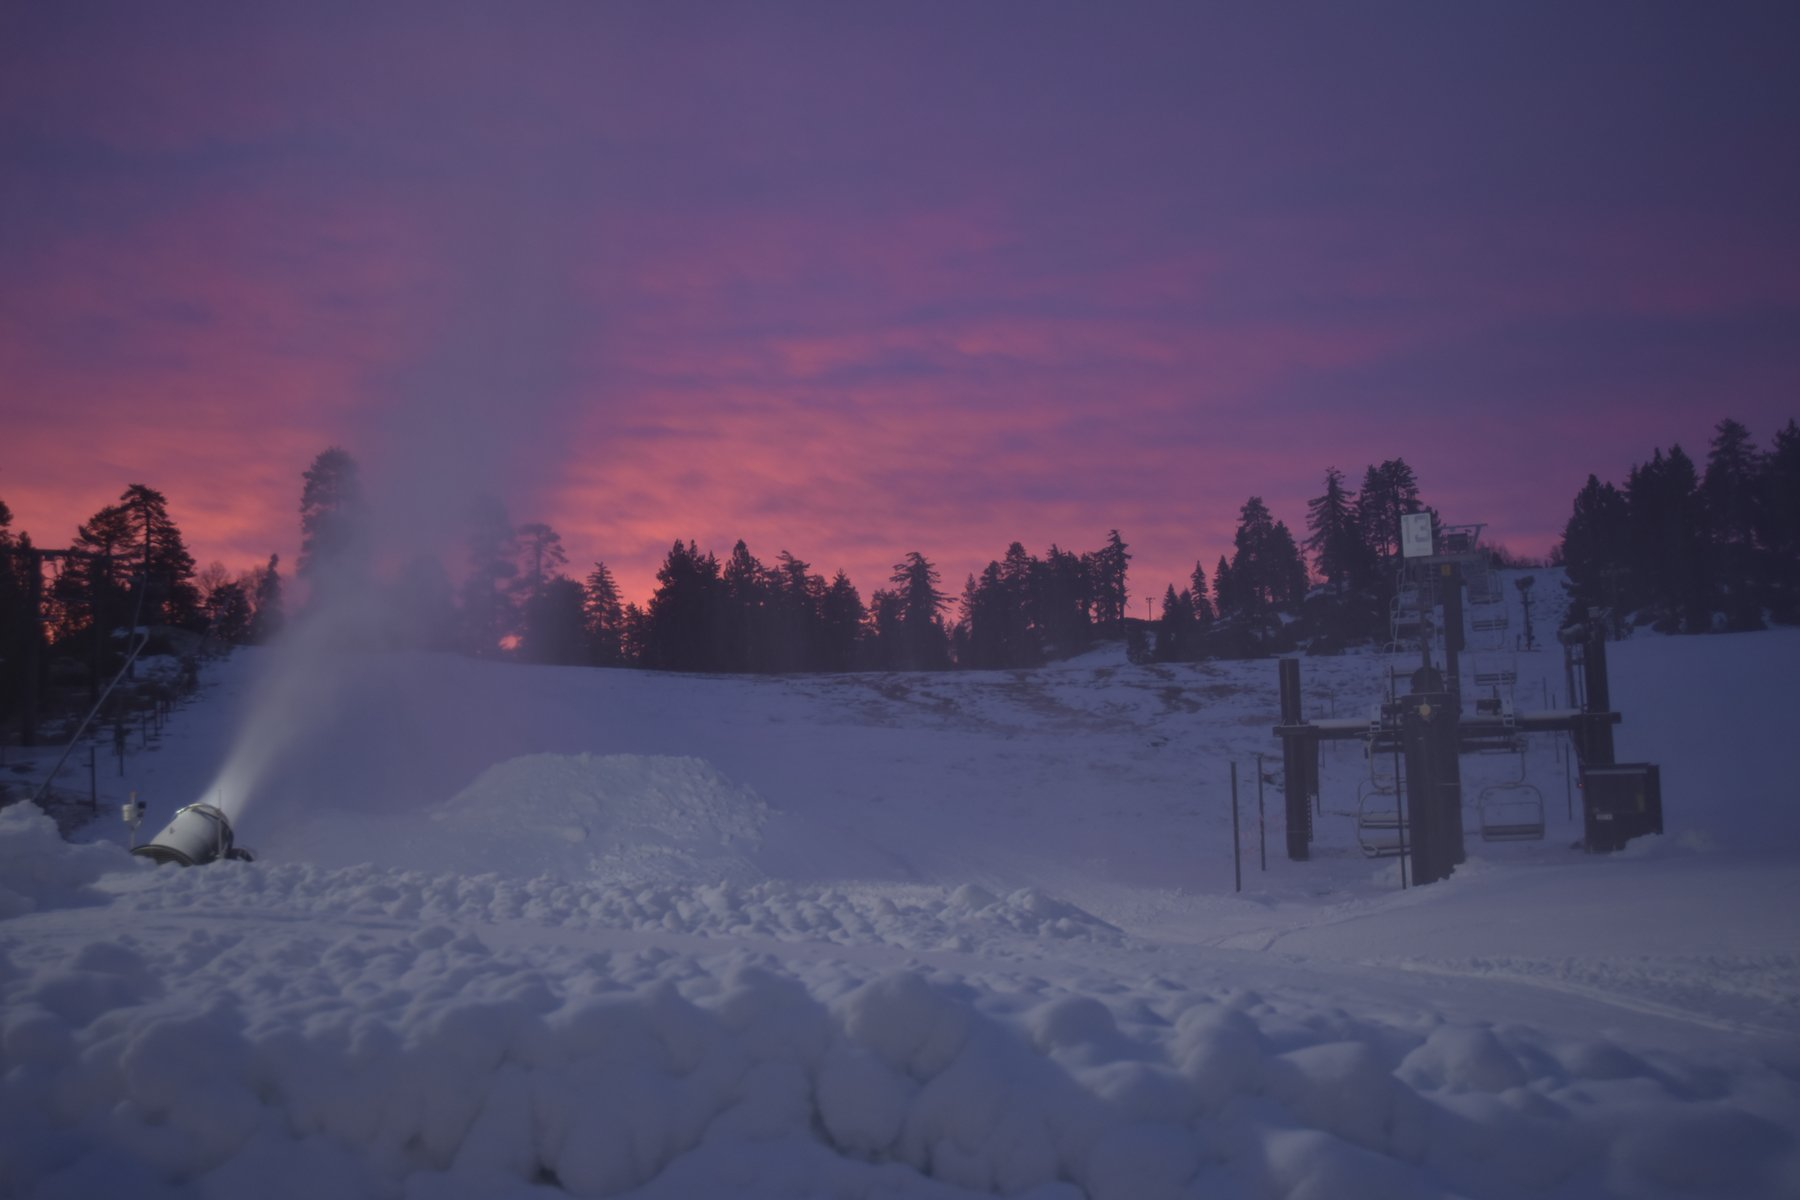 Snow making machine blows fresh snow into air in front of a brilliant pink sunset